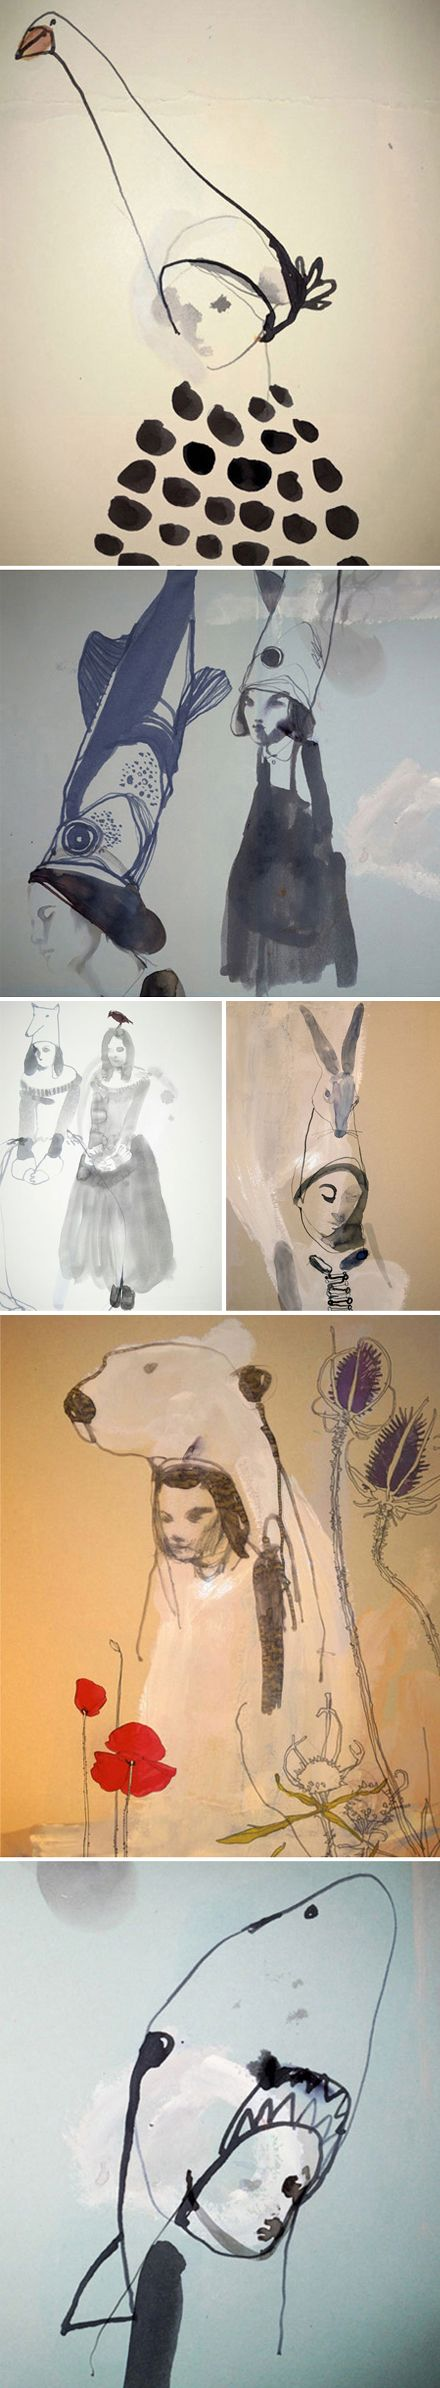 mad hatter series (by daniel egneus)